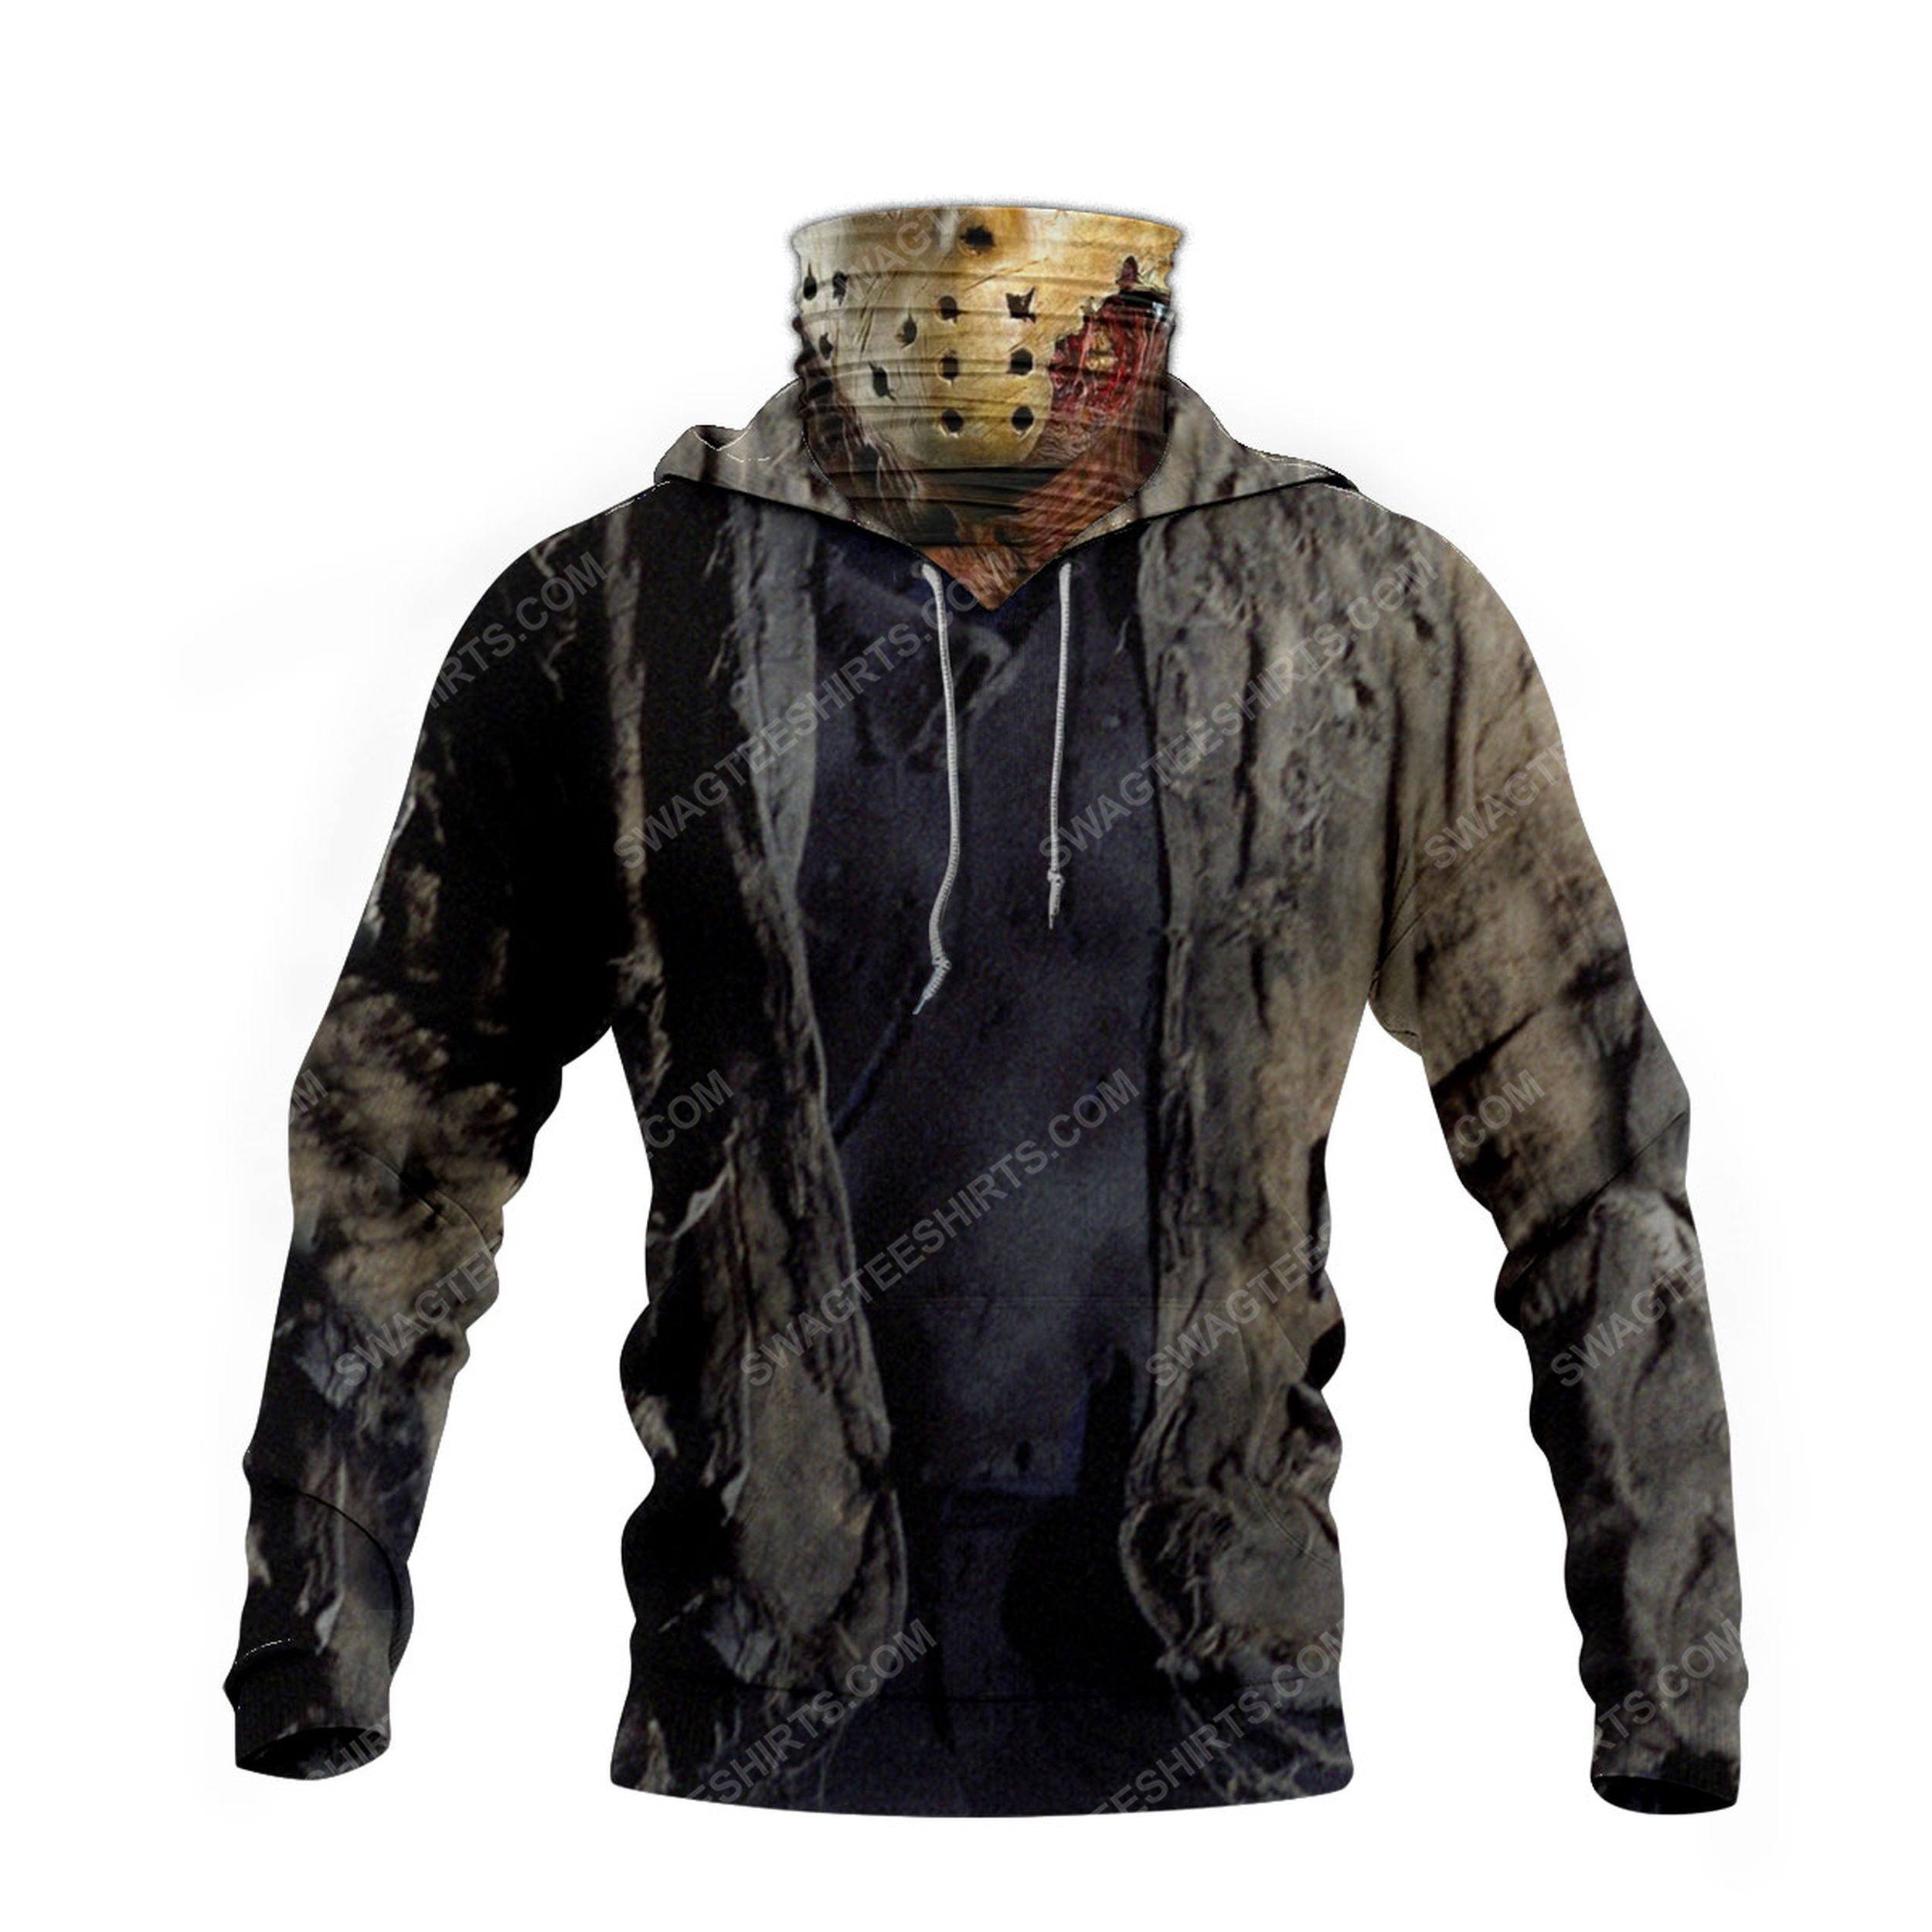 Friday the 13th jason voorhees for halloween full print mask hoodie 4(1)